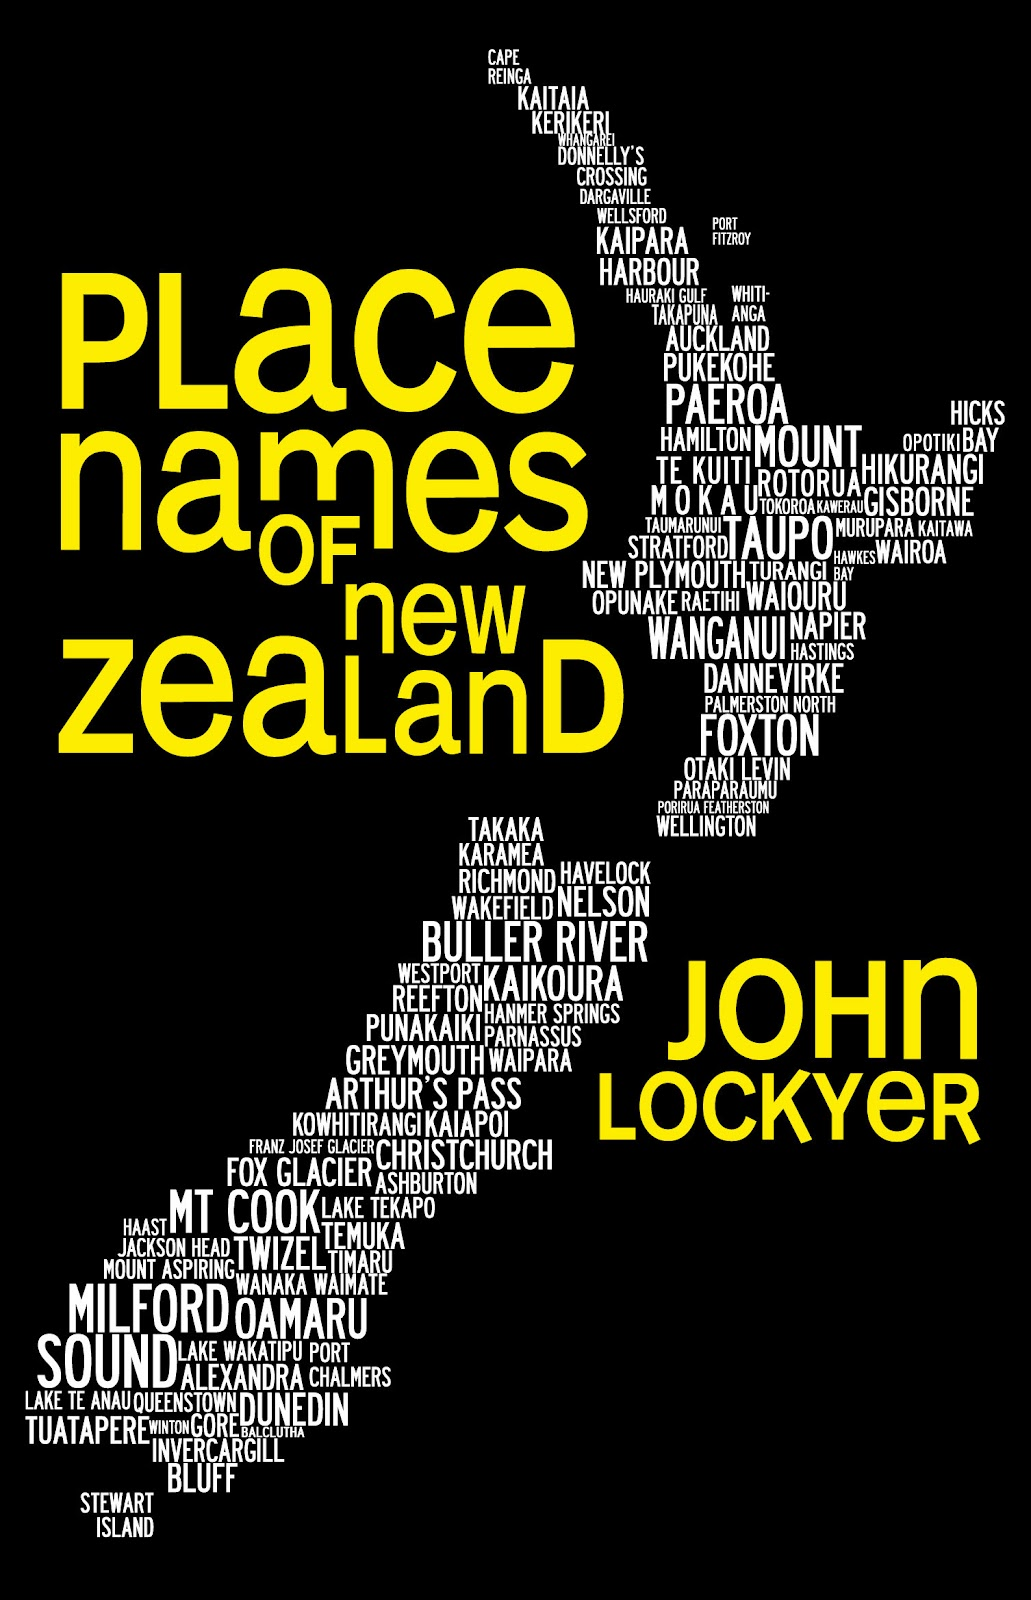 zealand names place john copyright books lockyer beattie meanings titles many bookstores concerns owing harper recalling collins interesting note unofficial